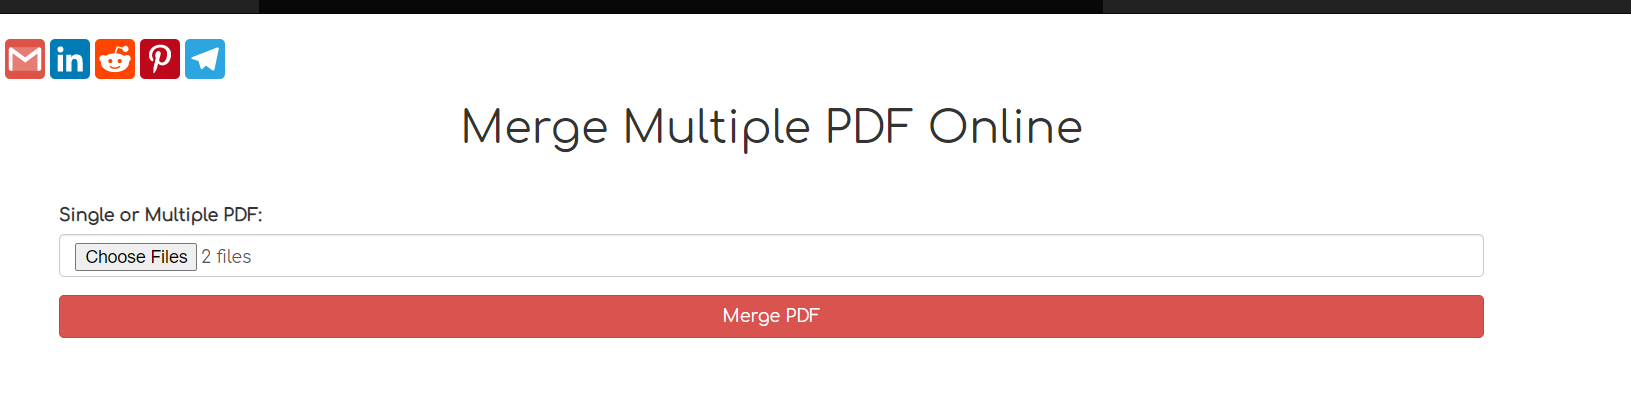 Node.js Express Merge Multiple PDF Files Using Easy-PDF-Merge Library Full Tutorial 2020